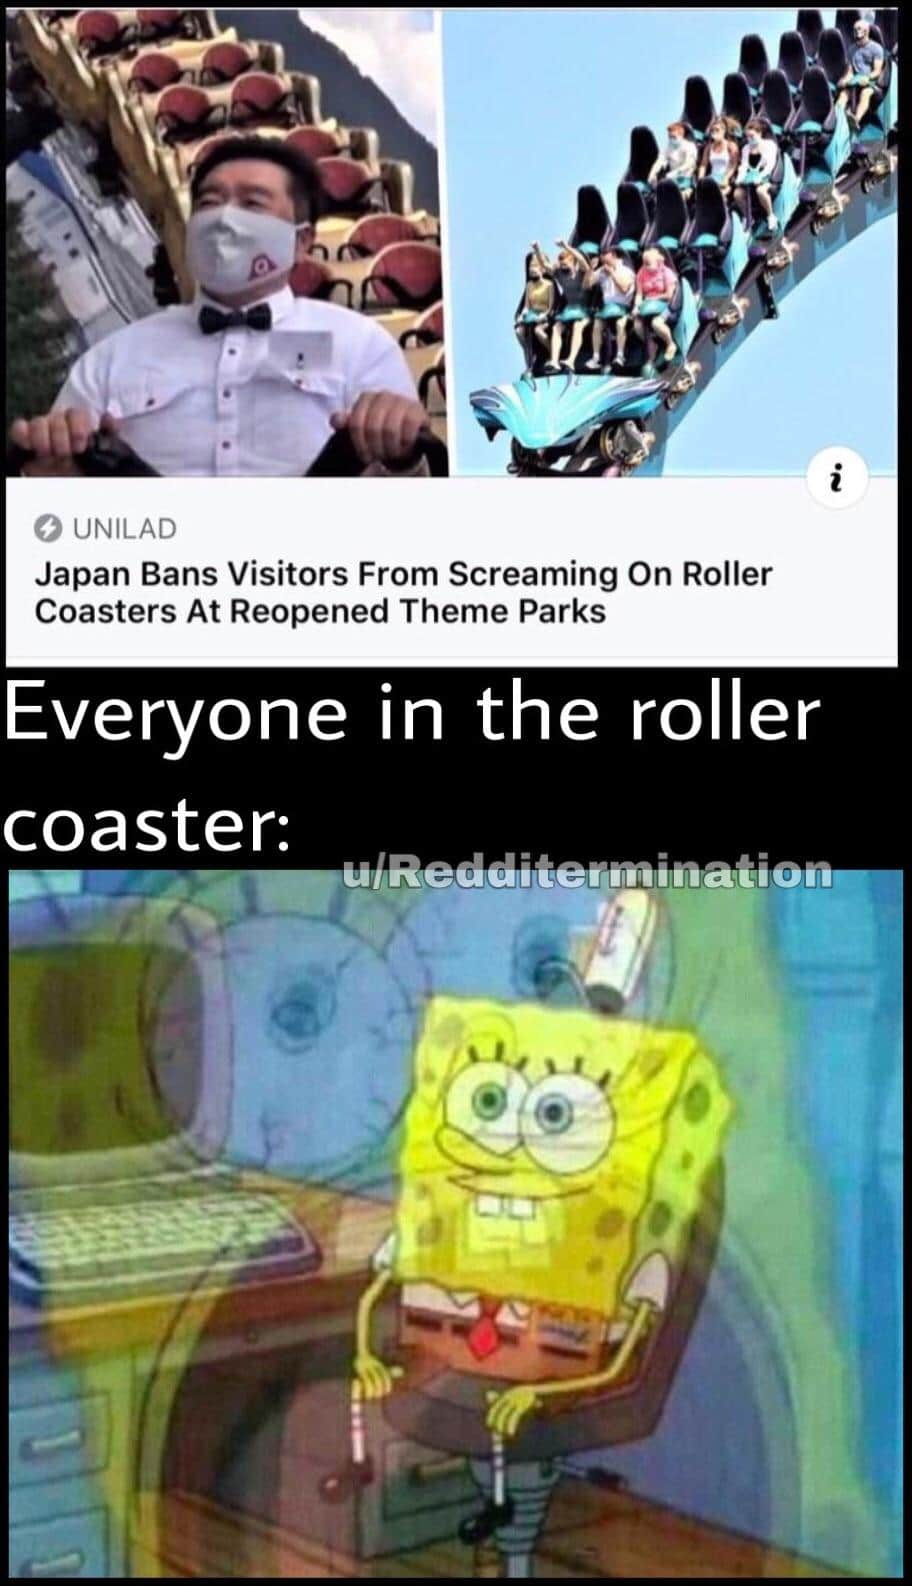 Spongebob, Japan, American, USA, Japanese, Fuji Spongebob Memes Spongebob, Japan, American, USA, Japanese, Fuji text: O UNILAD Japan Bans Visitors From Screaming On Roller Coasters At Reopened Theme Parks Everyone in the roller coaster: